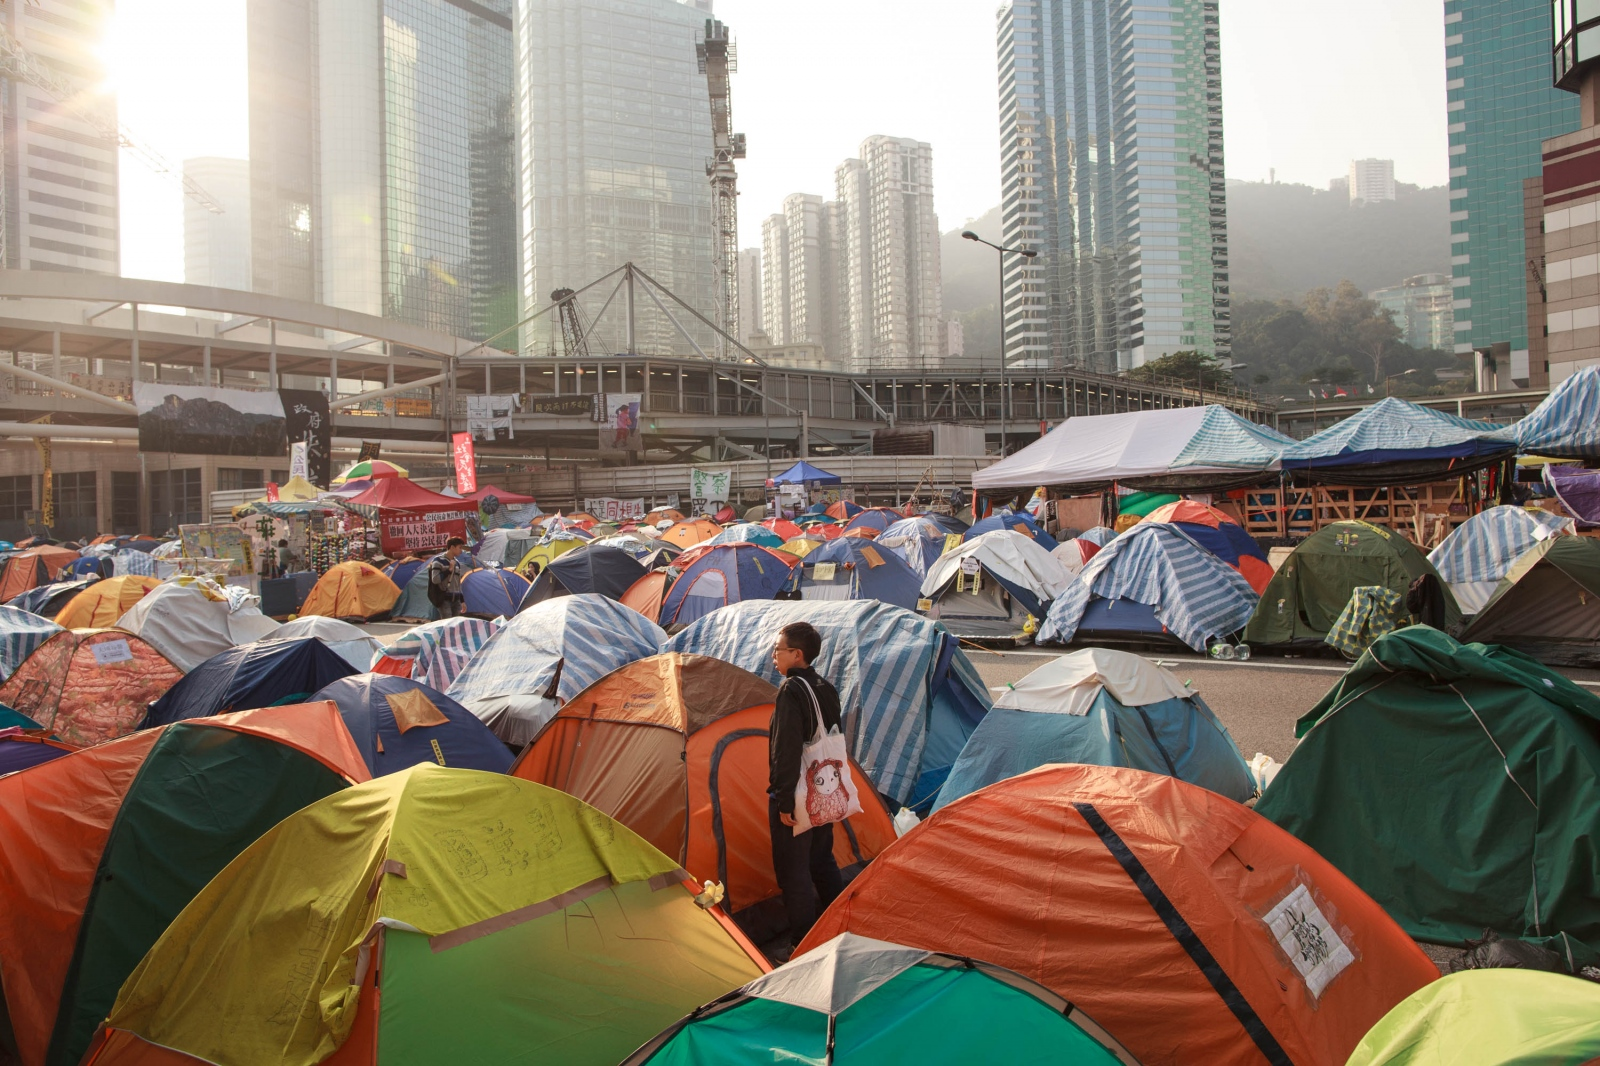 A pro-democracy protestor stands amidst a sea of tents on Harcourt Road, a major thoroughfare, over a month in to protests calling for universal suffrage in 2017 with the right to elect the city's own chief executive-- without Beijing's pre-approval of candidates-- a demand that remains rejected by Beijing.